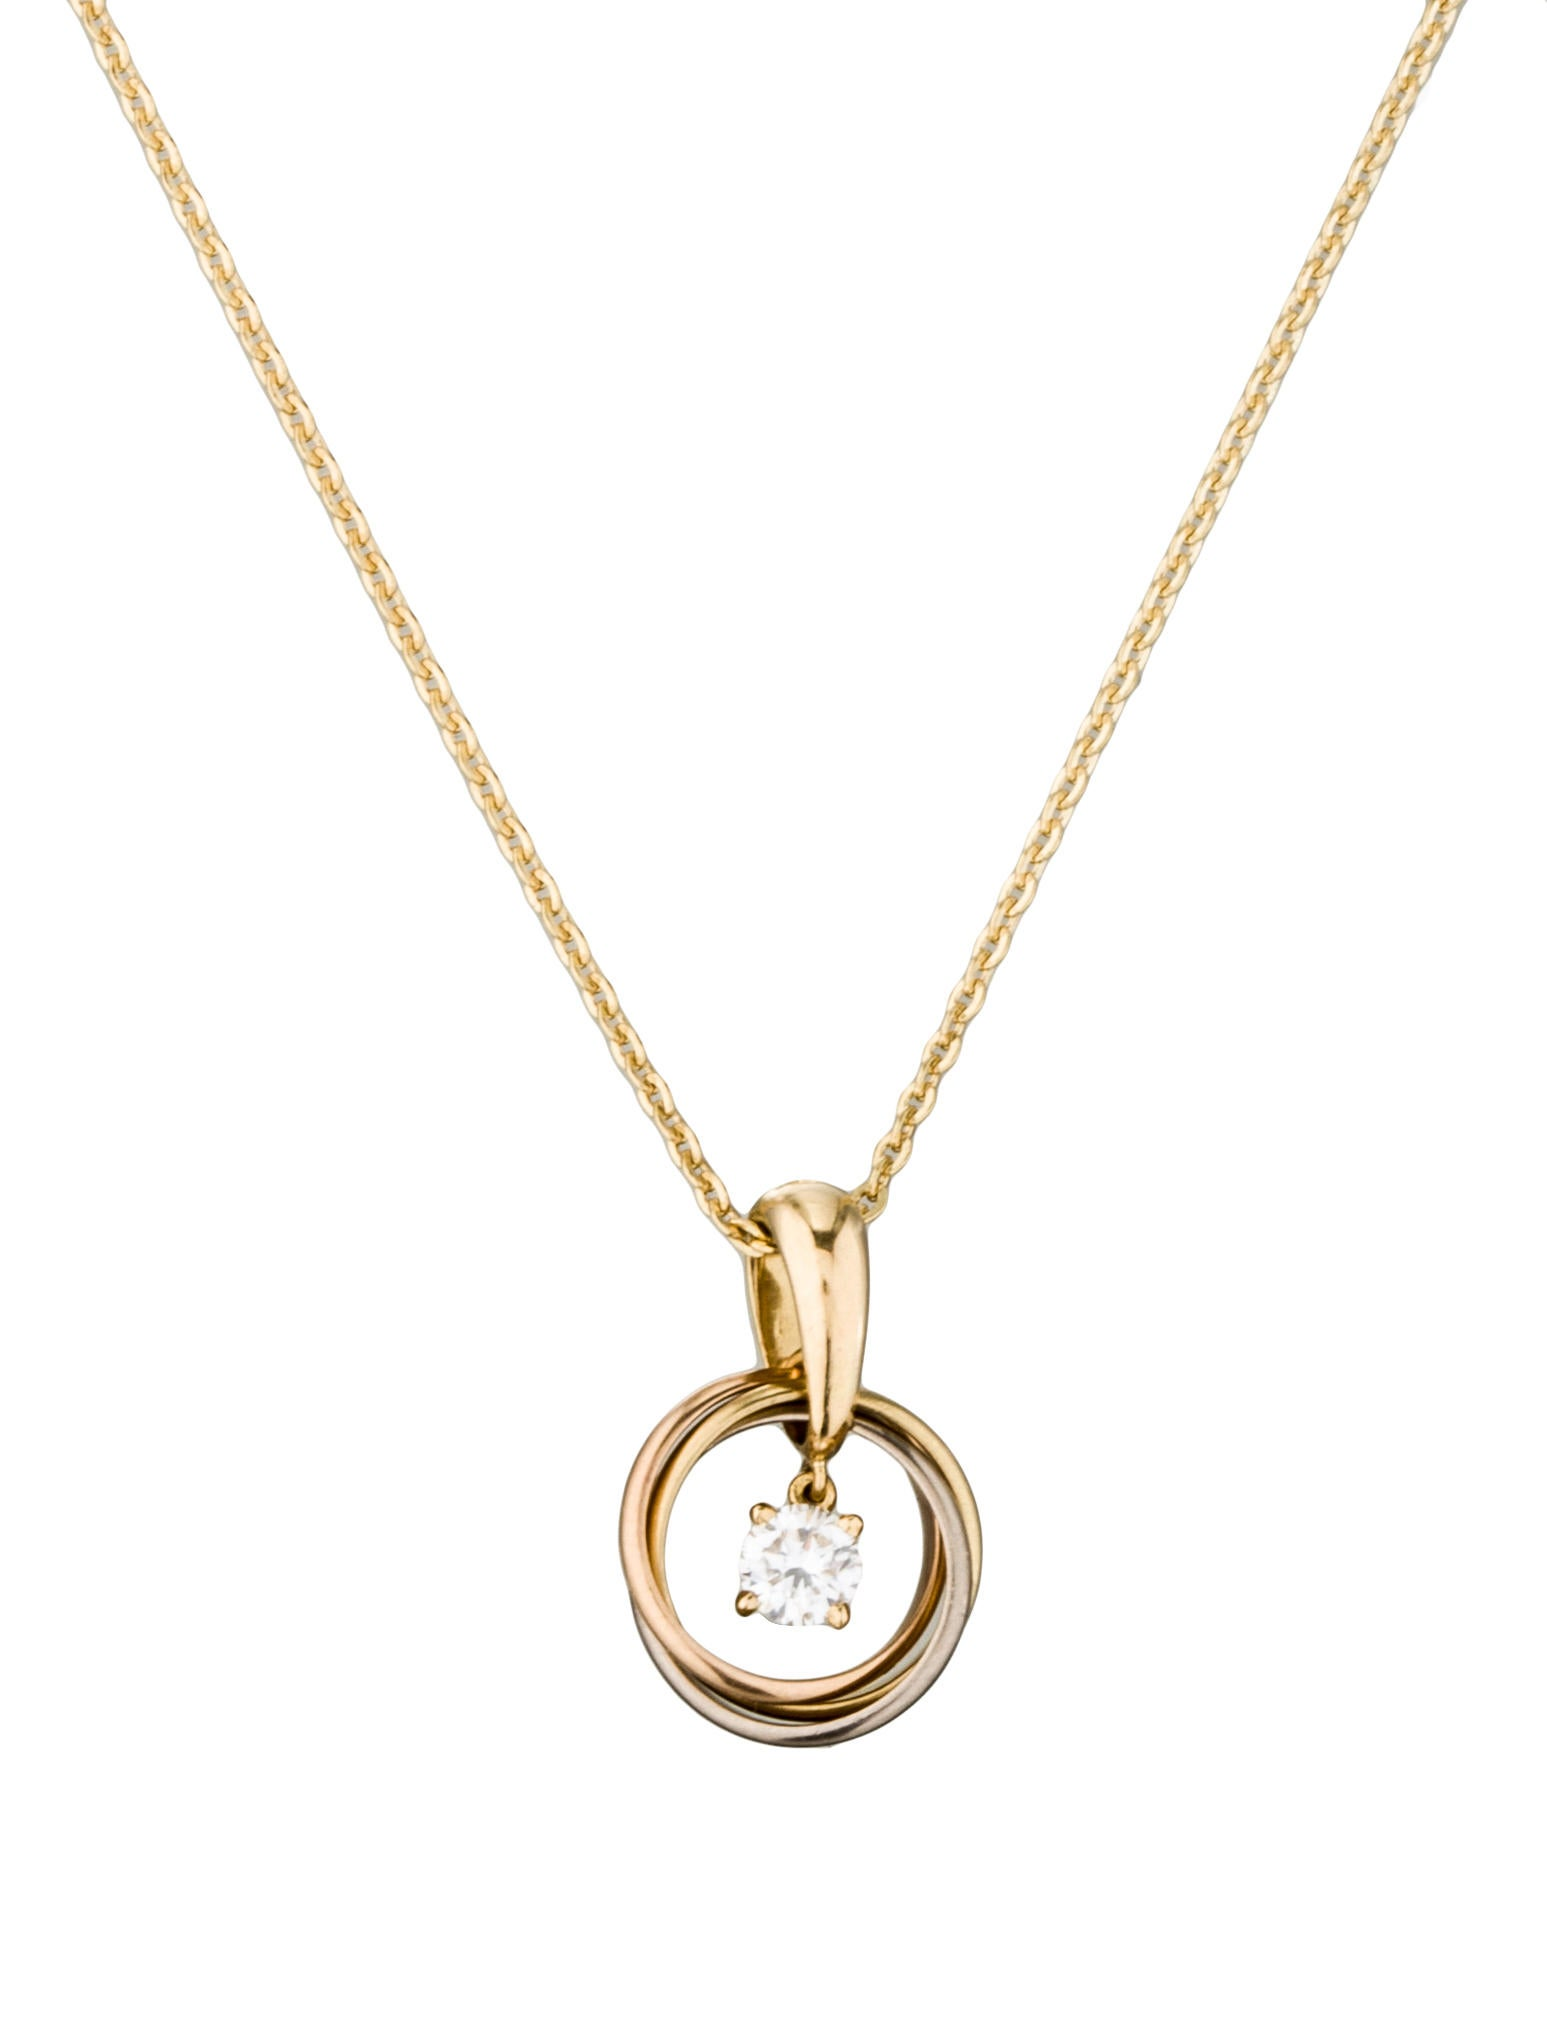 Cartier trinity diamond pendant necklace necklaces crt23779 trinity diamond pendant necklace mozeypictures Image collections